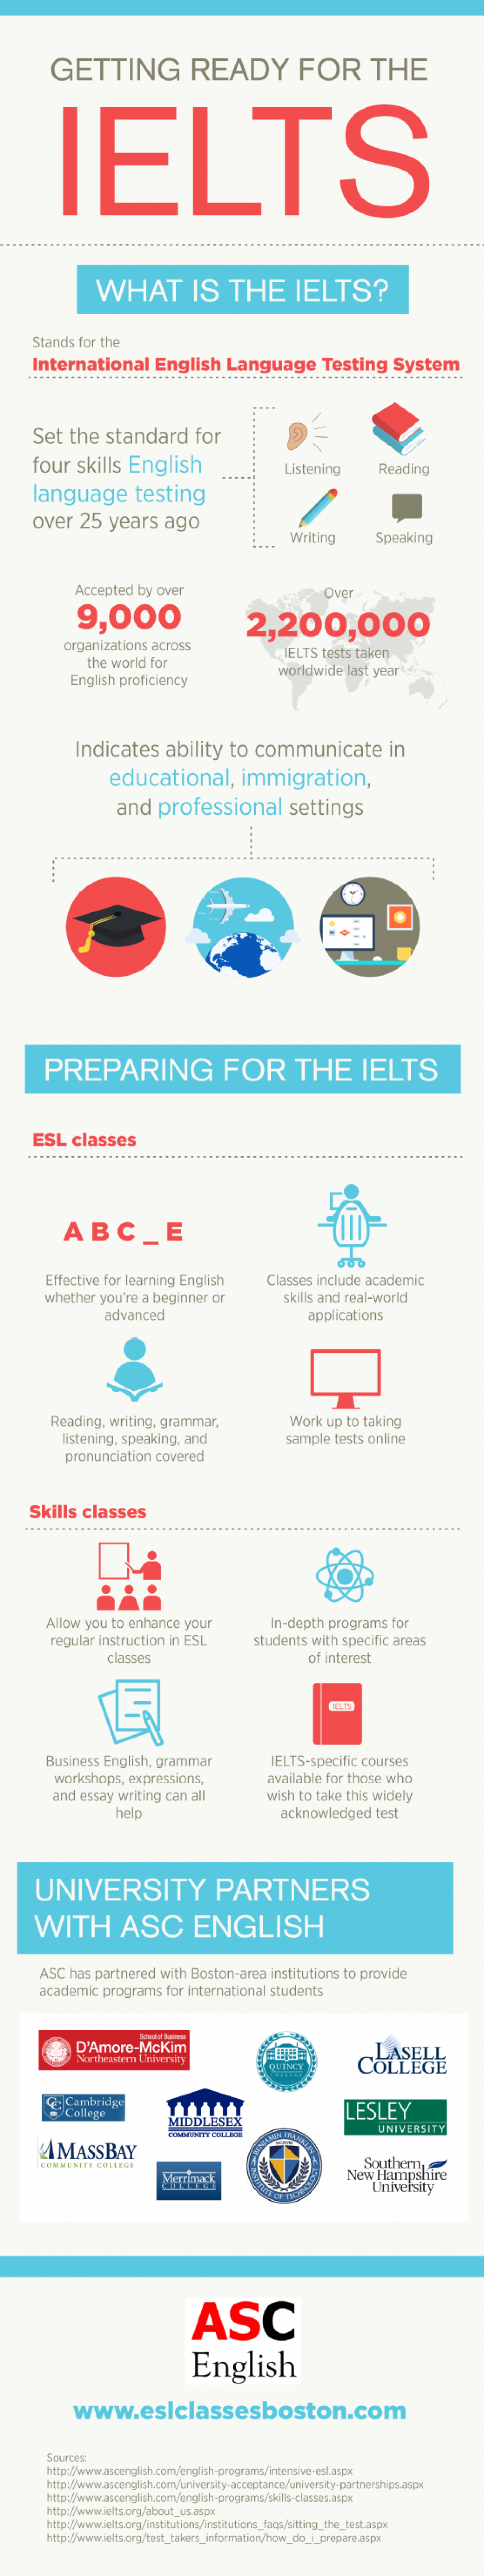 Getting Ready for the IELTS  Infographic